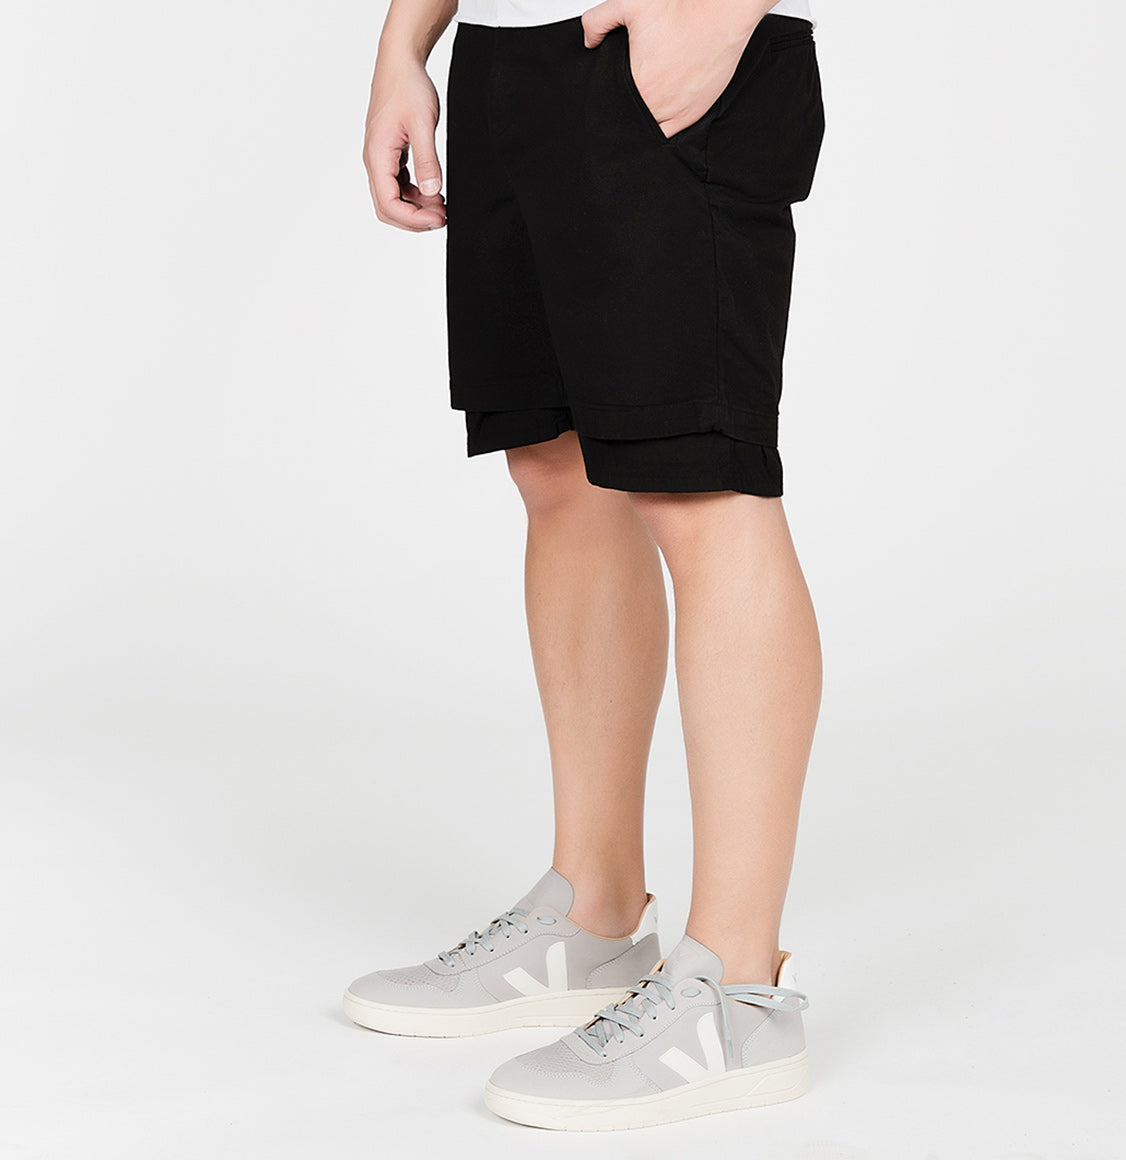 Double Layer Cotton Shorts Black | The Project Garments - B